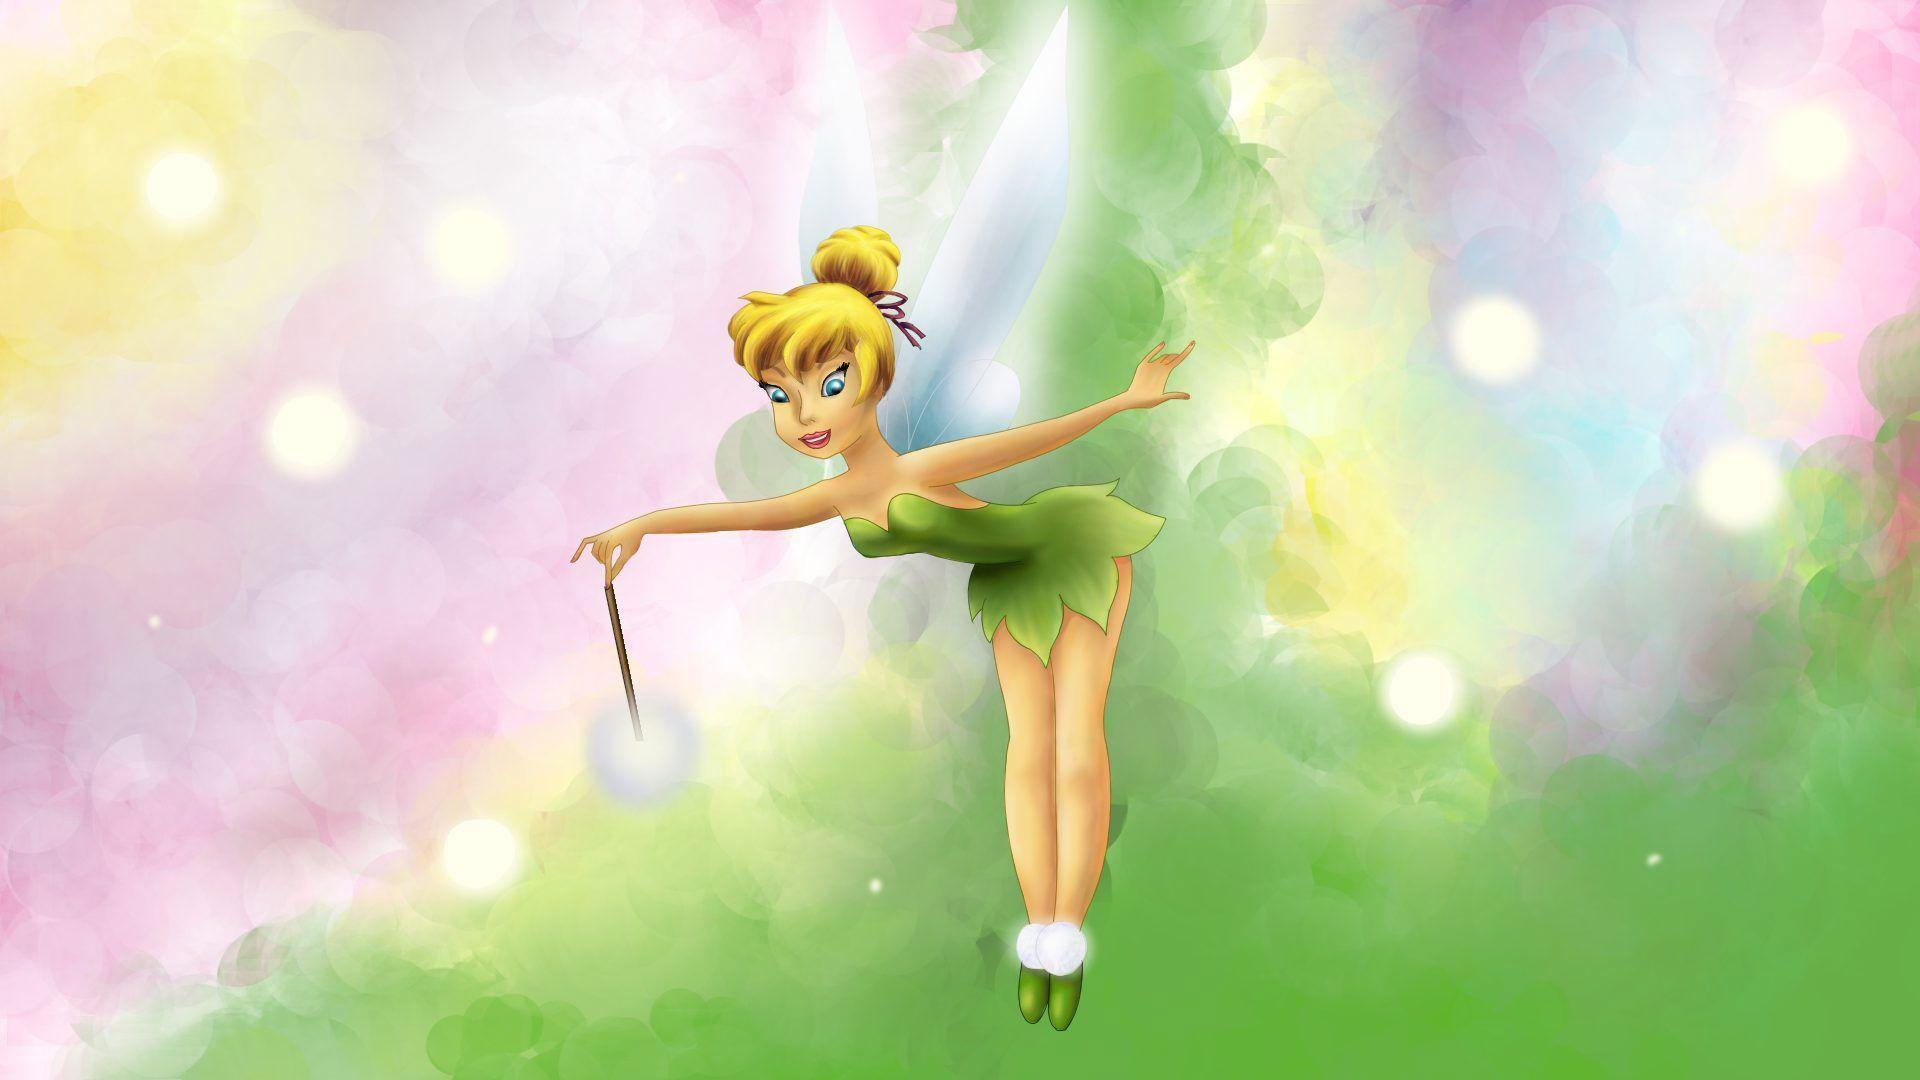 Tinkerbell Wallpaper – What You Need to Know About This Decorative wallpaper